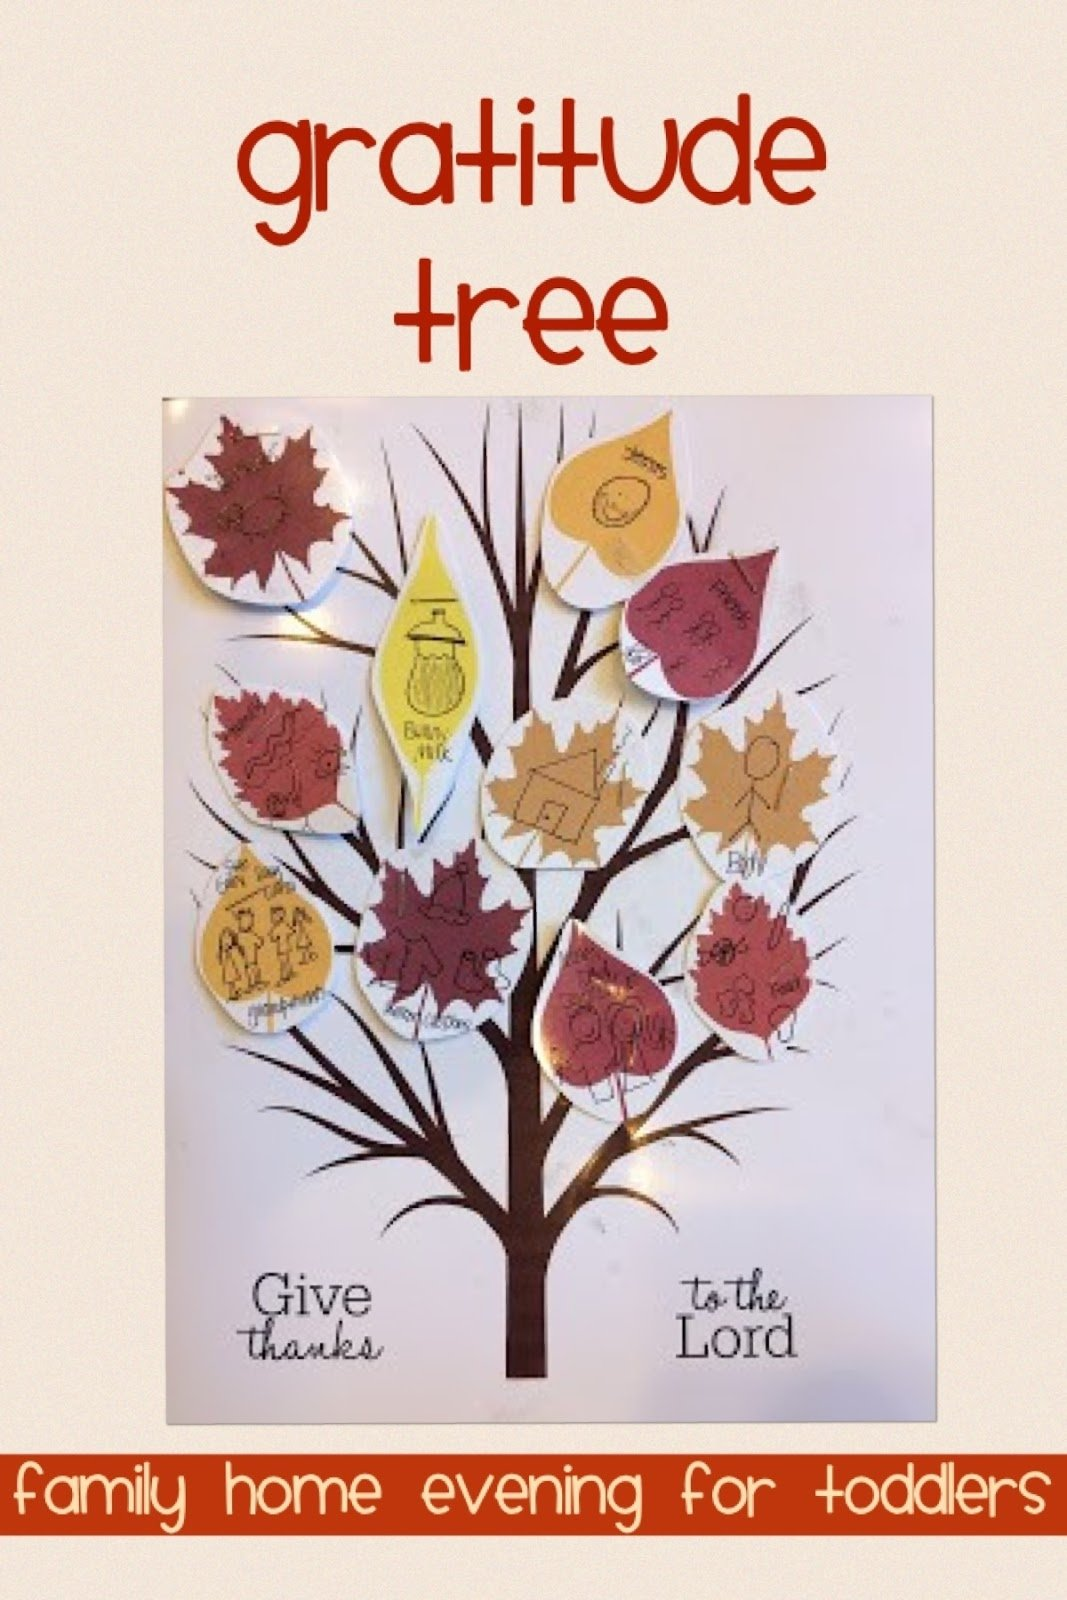 10 Elegant Family Home Evening Ideas For Toddlers news with naylors gratitude 2 gratitude tree thanksgiving 2021